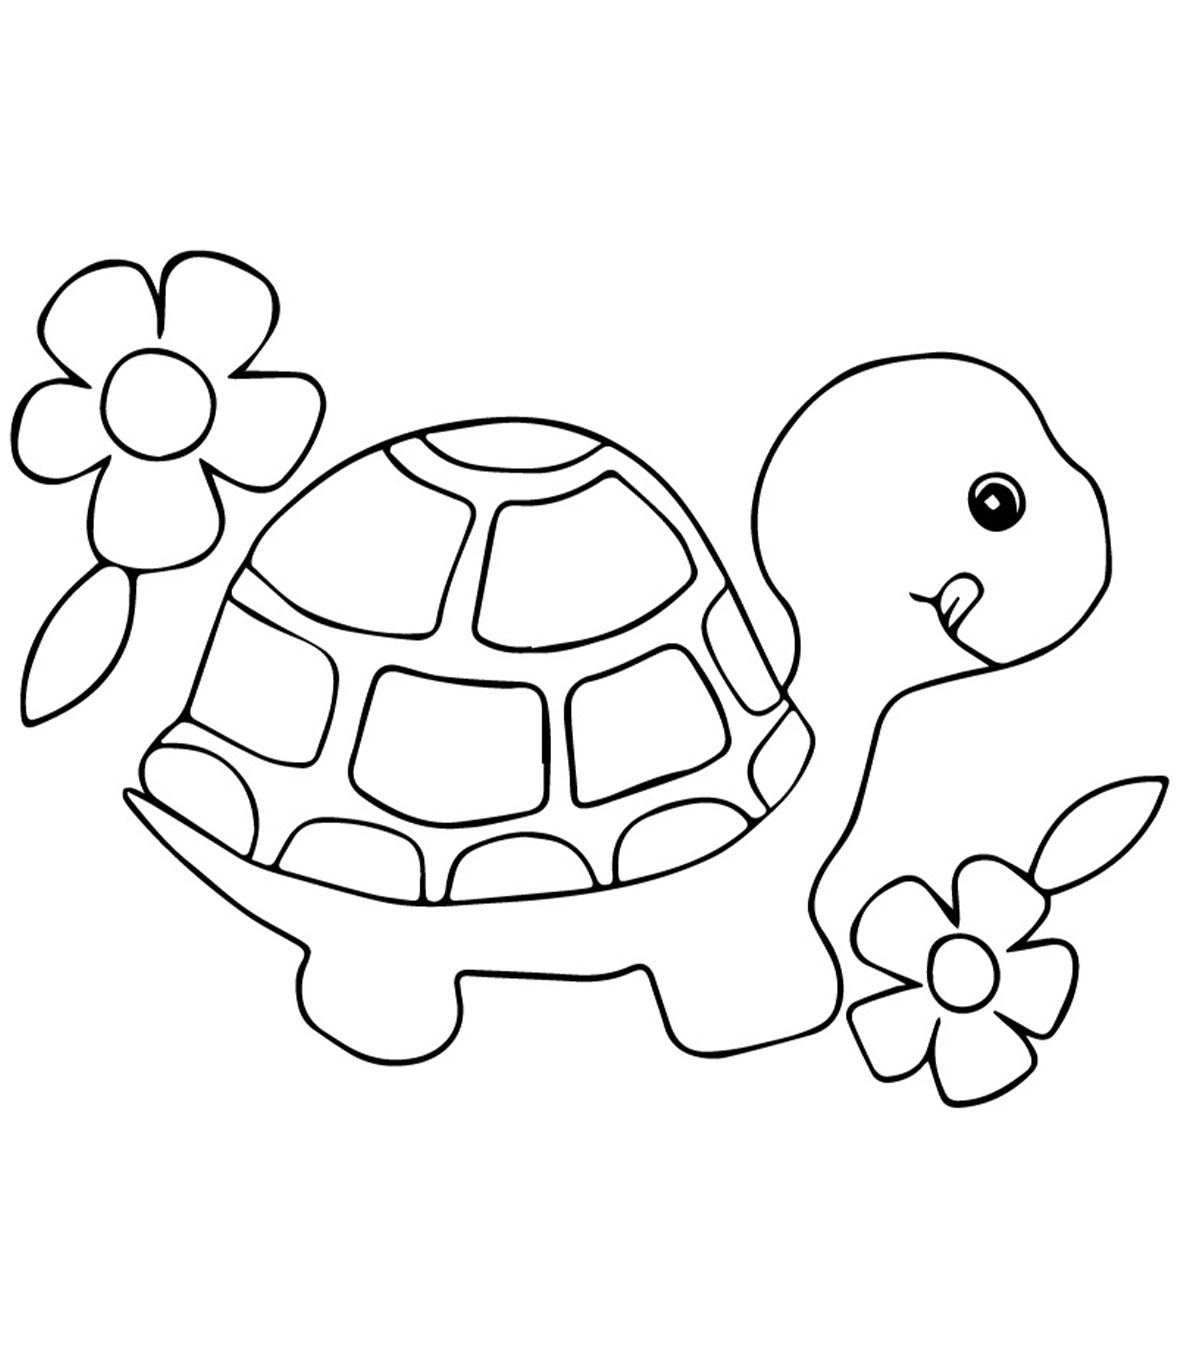 images of turtles to color turtle outline drawing at getdrawings free download turtles color to images of